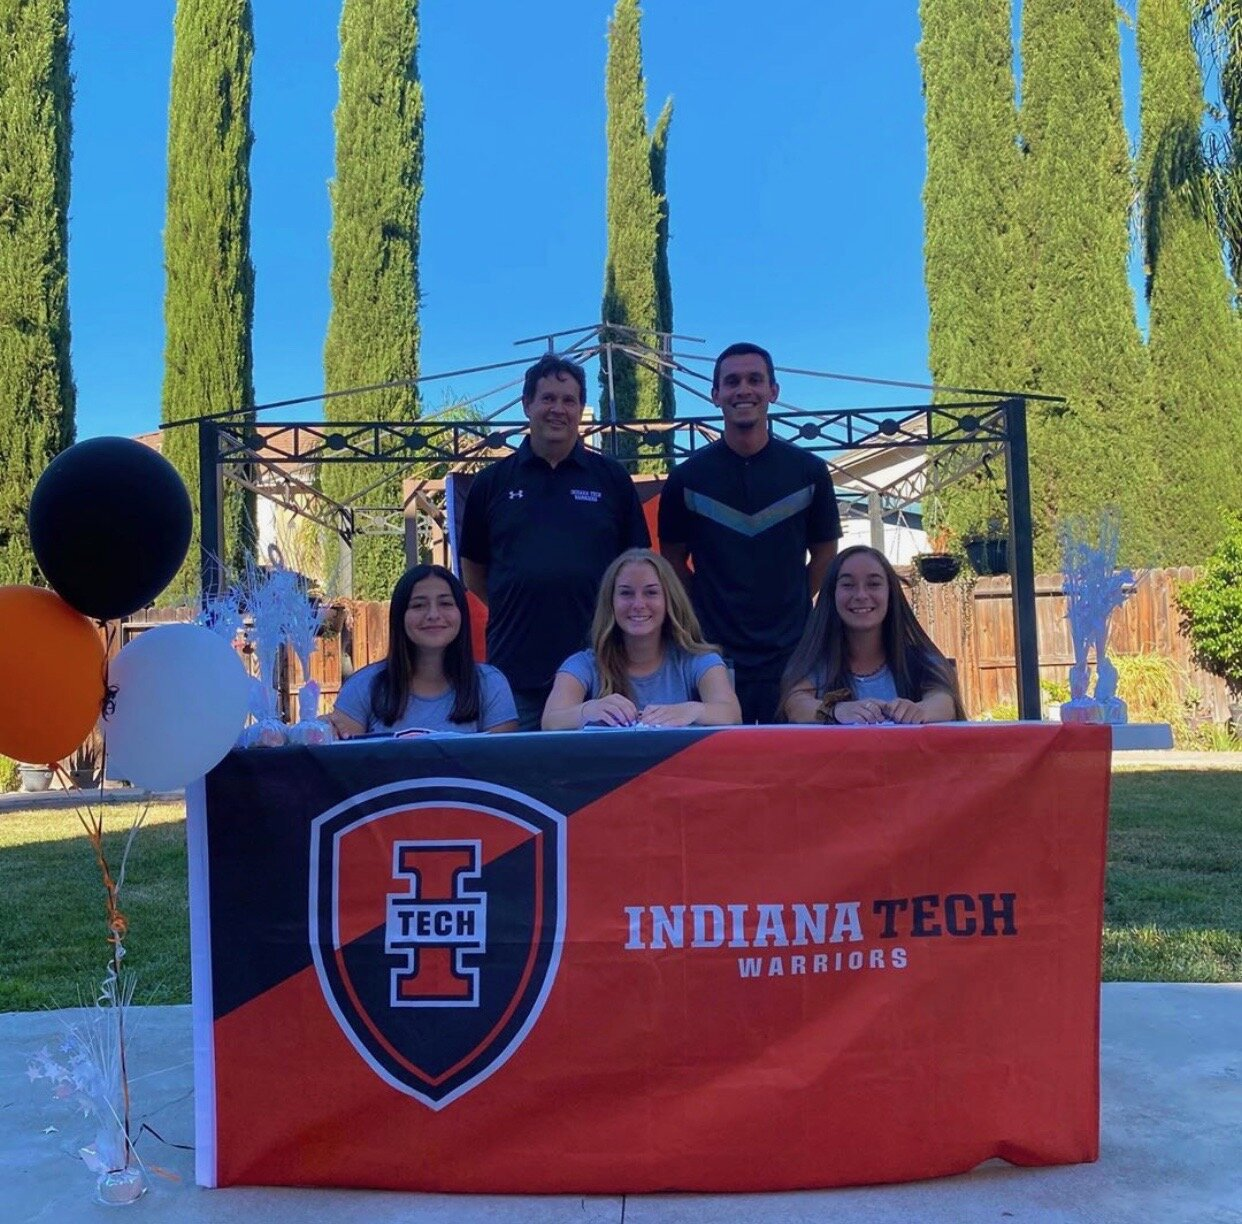 From left, back row are Indiana Tech Women's Soccer Coaches Jim Lipocky and Glen Gomez. In front of them are players Karmina Jimenez, Alyssa Williams, Alina Garcia.